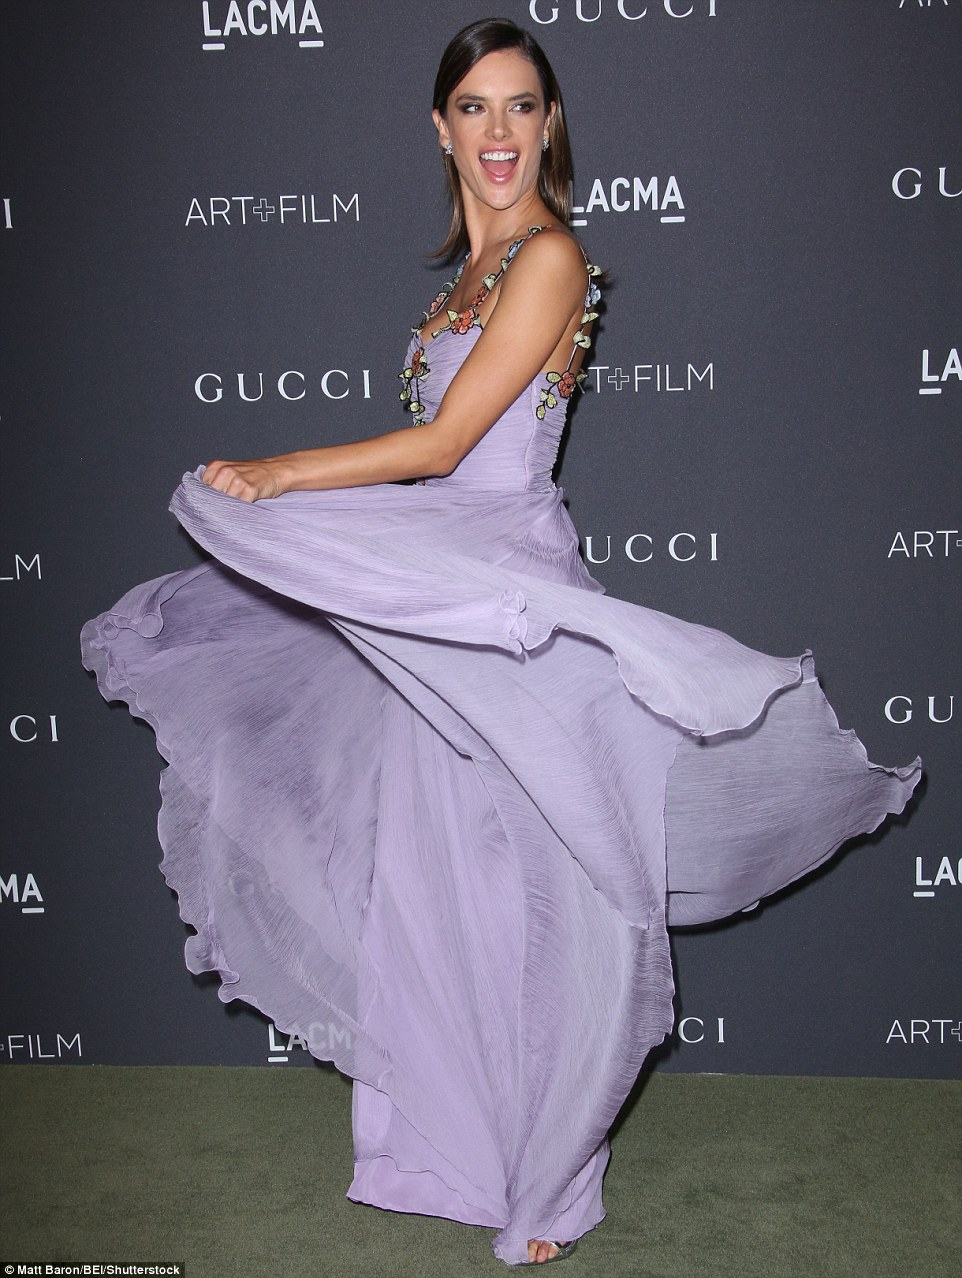 Alessandra Ambrosio puts bare back on show at the LACMA Art + Film Gala in LA